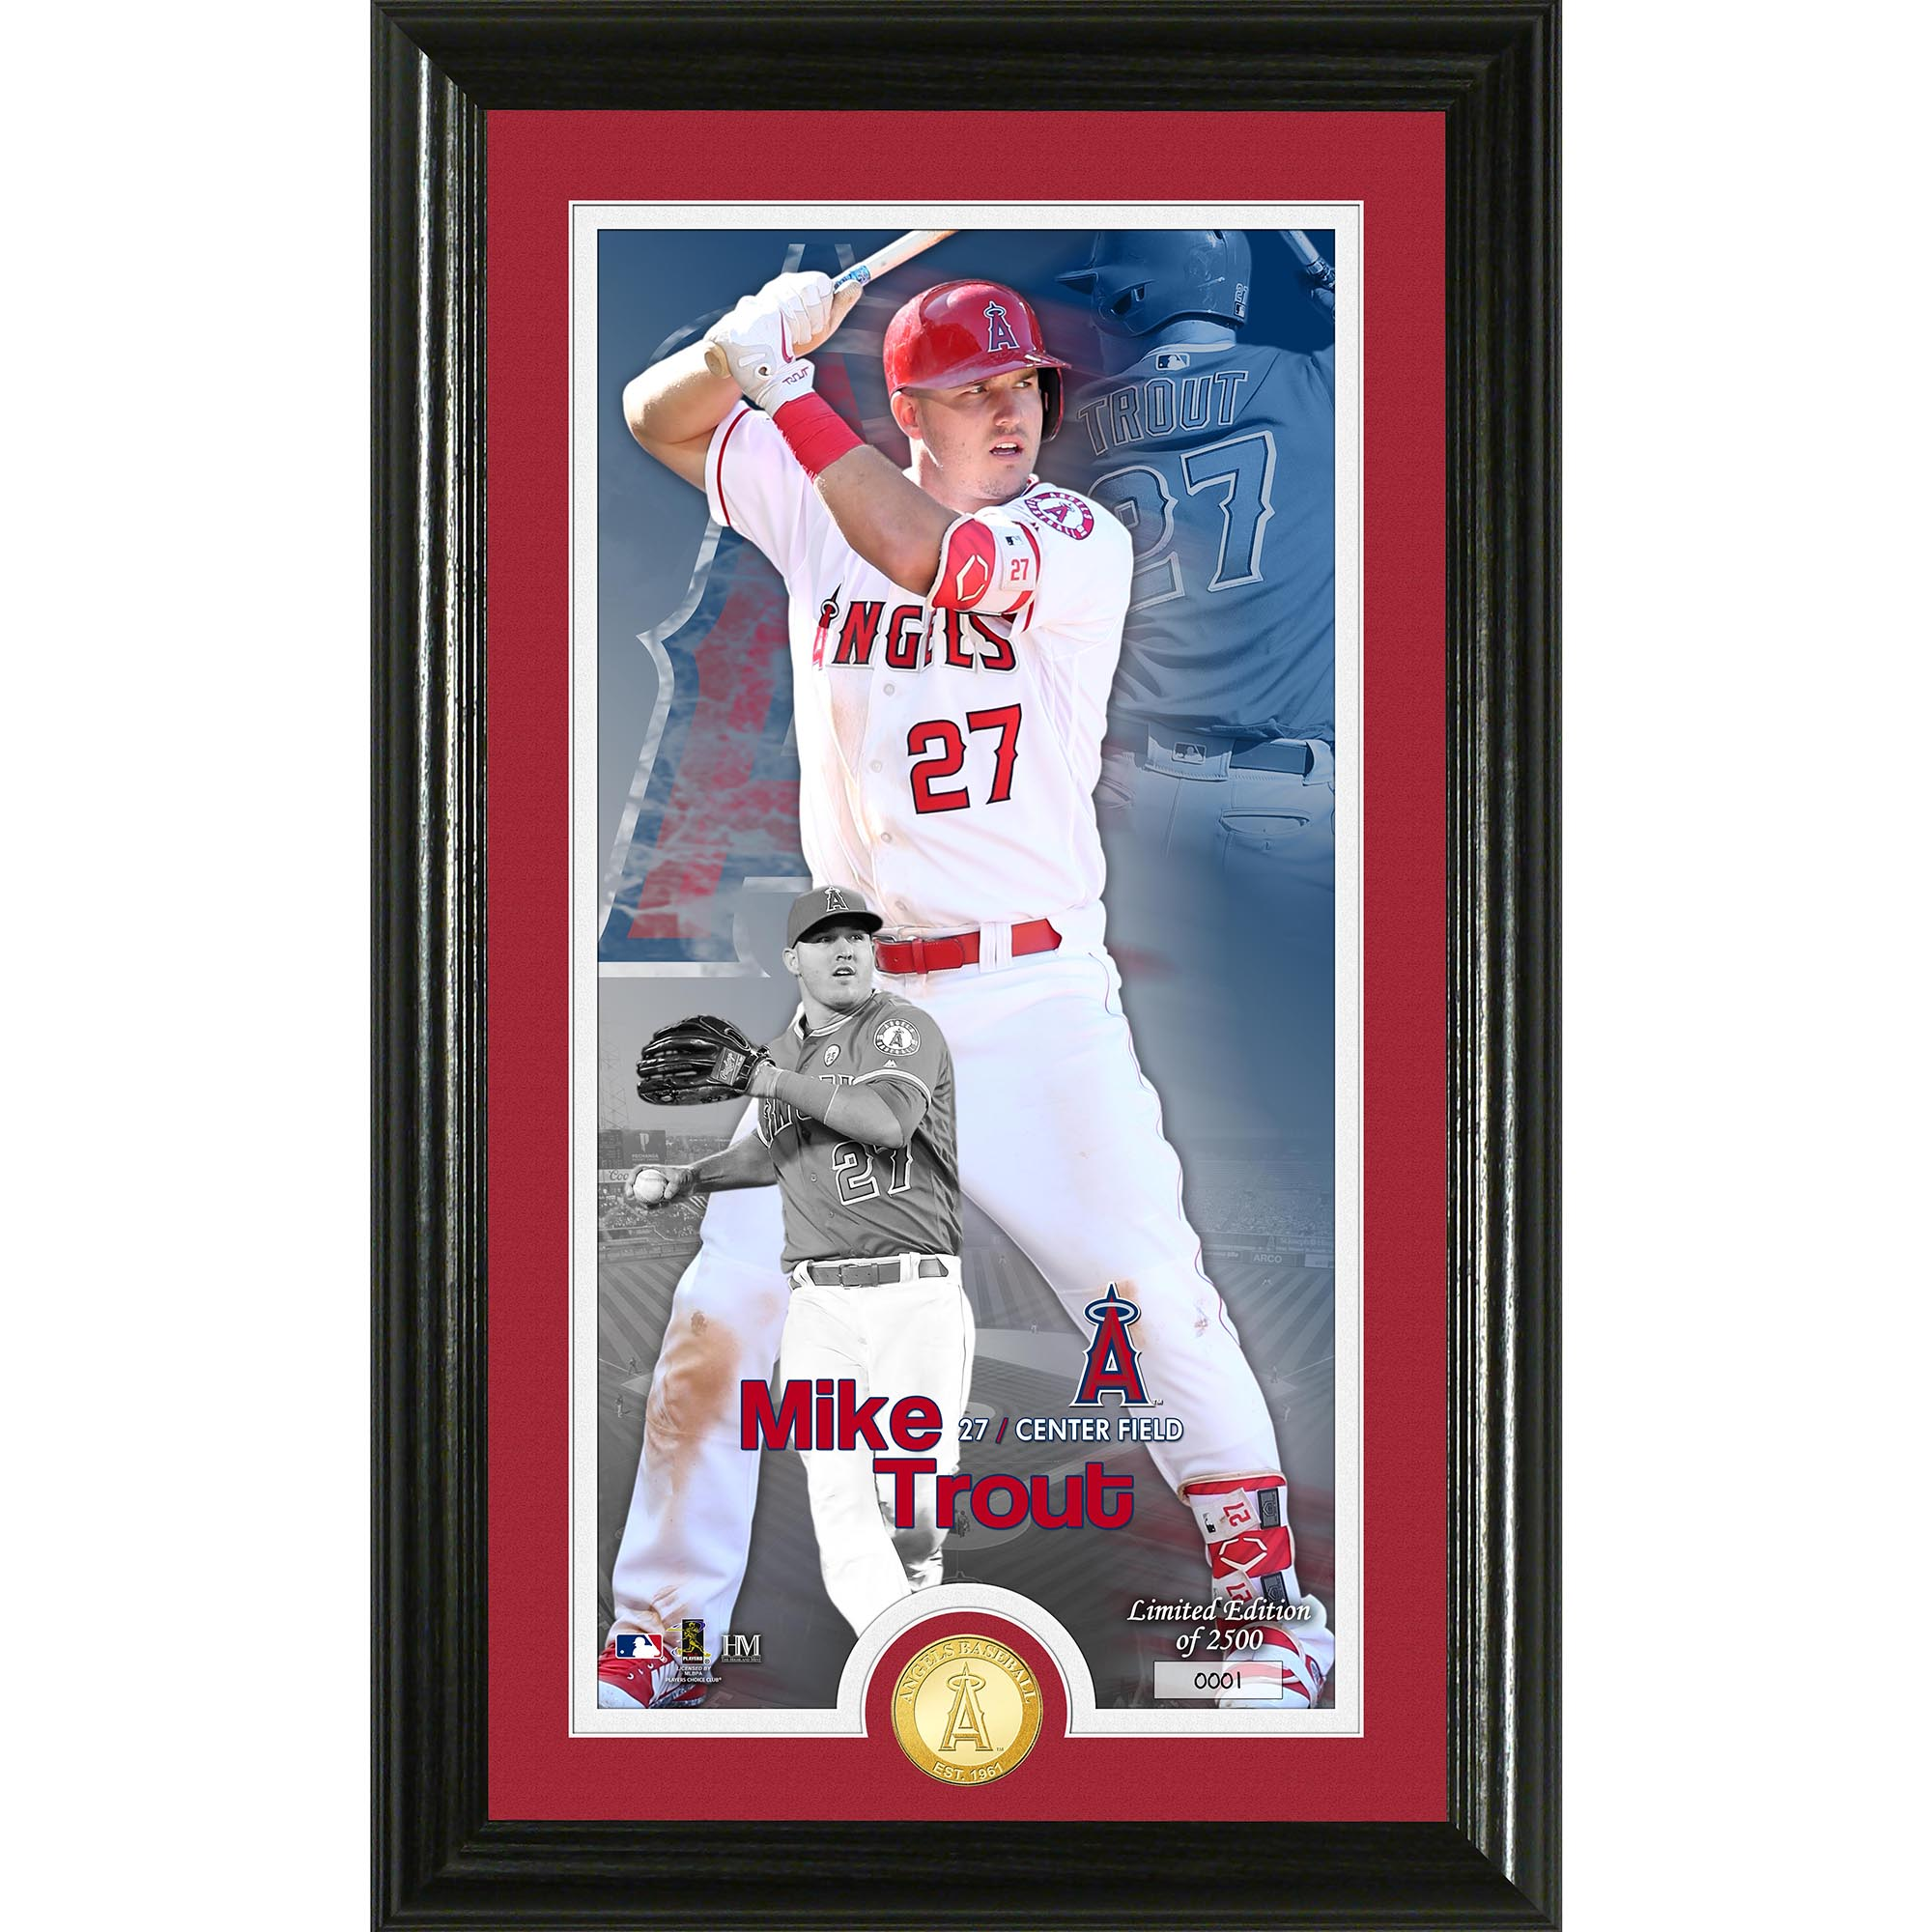 "Mike Trout Los Angeles Angels Highland Mint 12"" x 20"" Player Supreme Photo Mint - No Size"